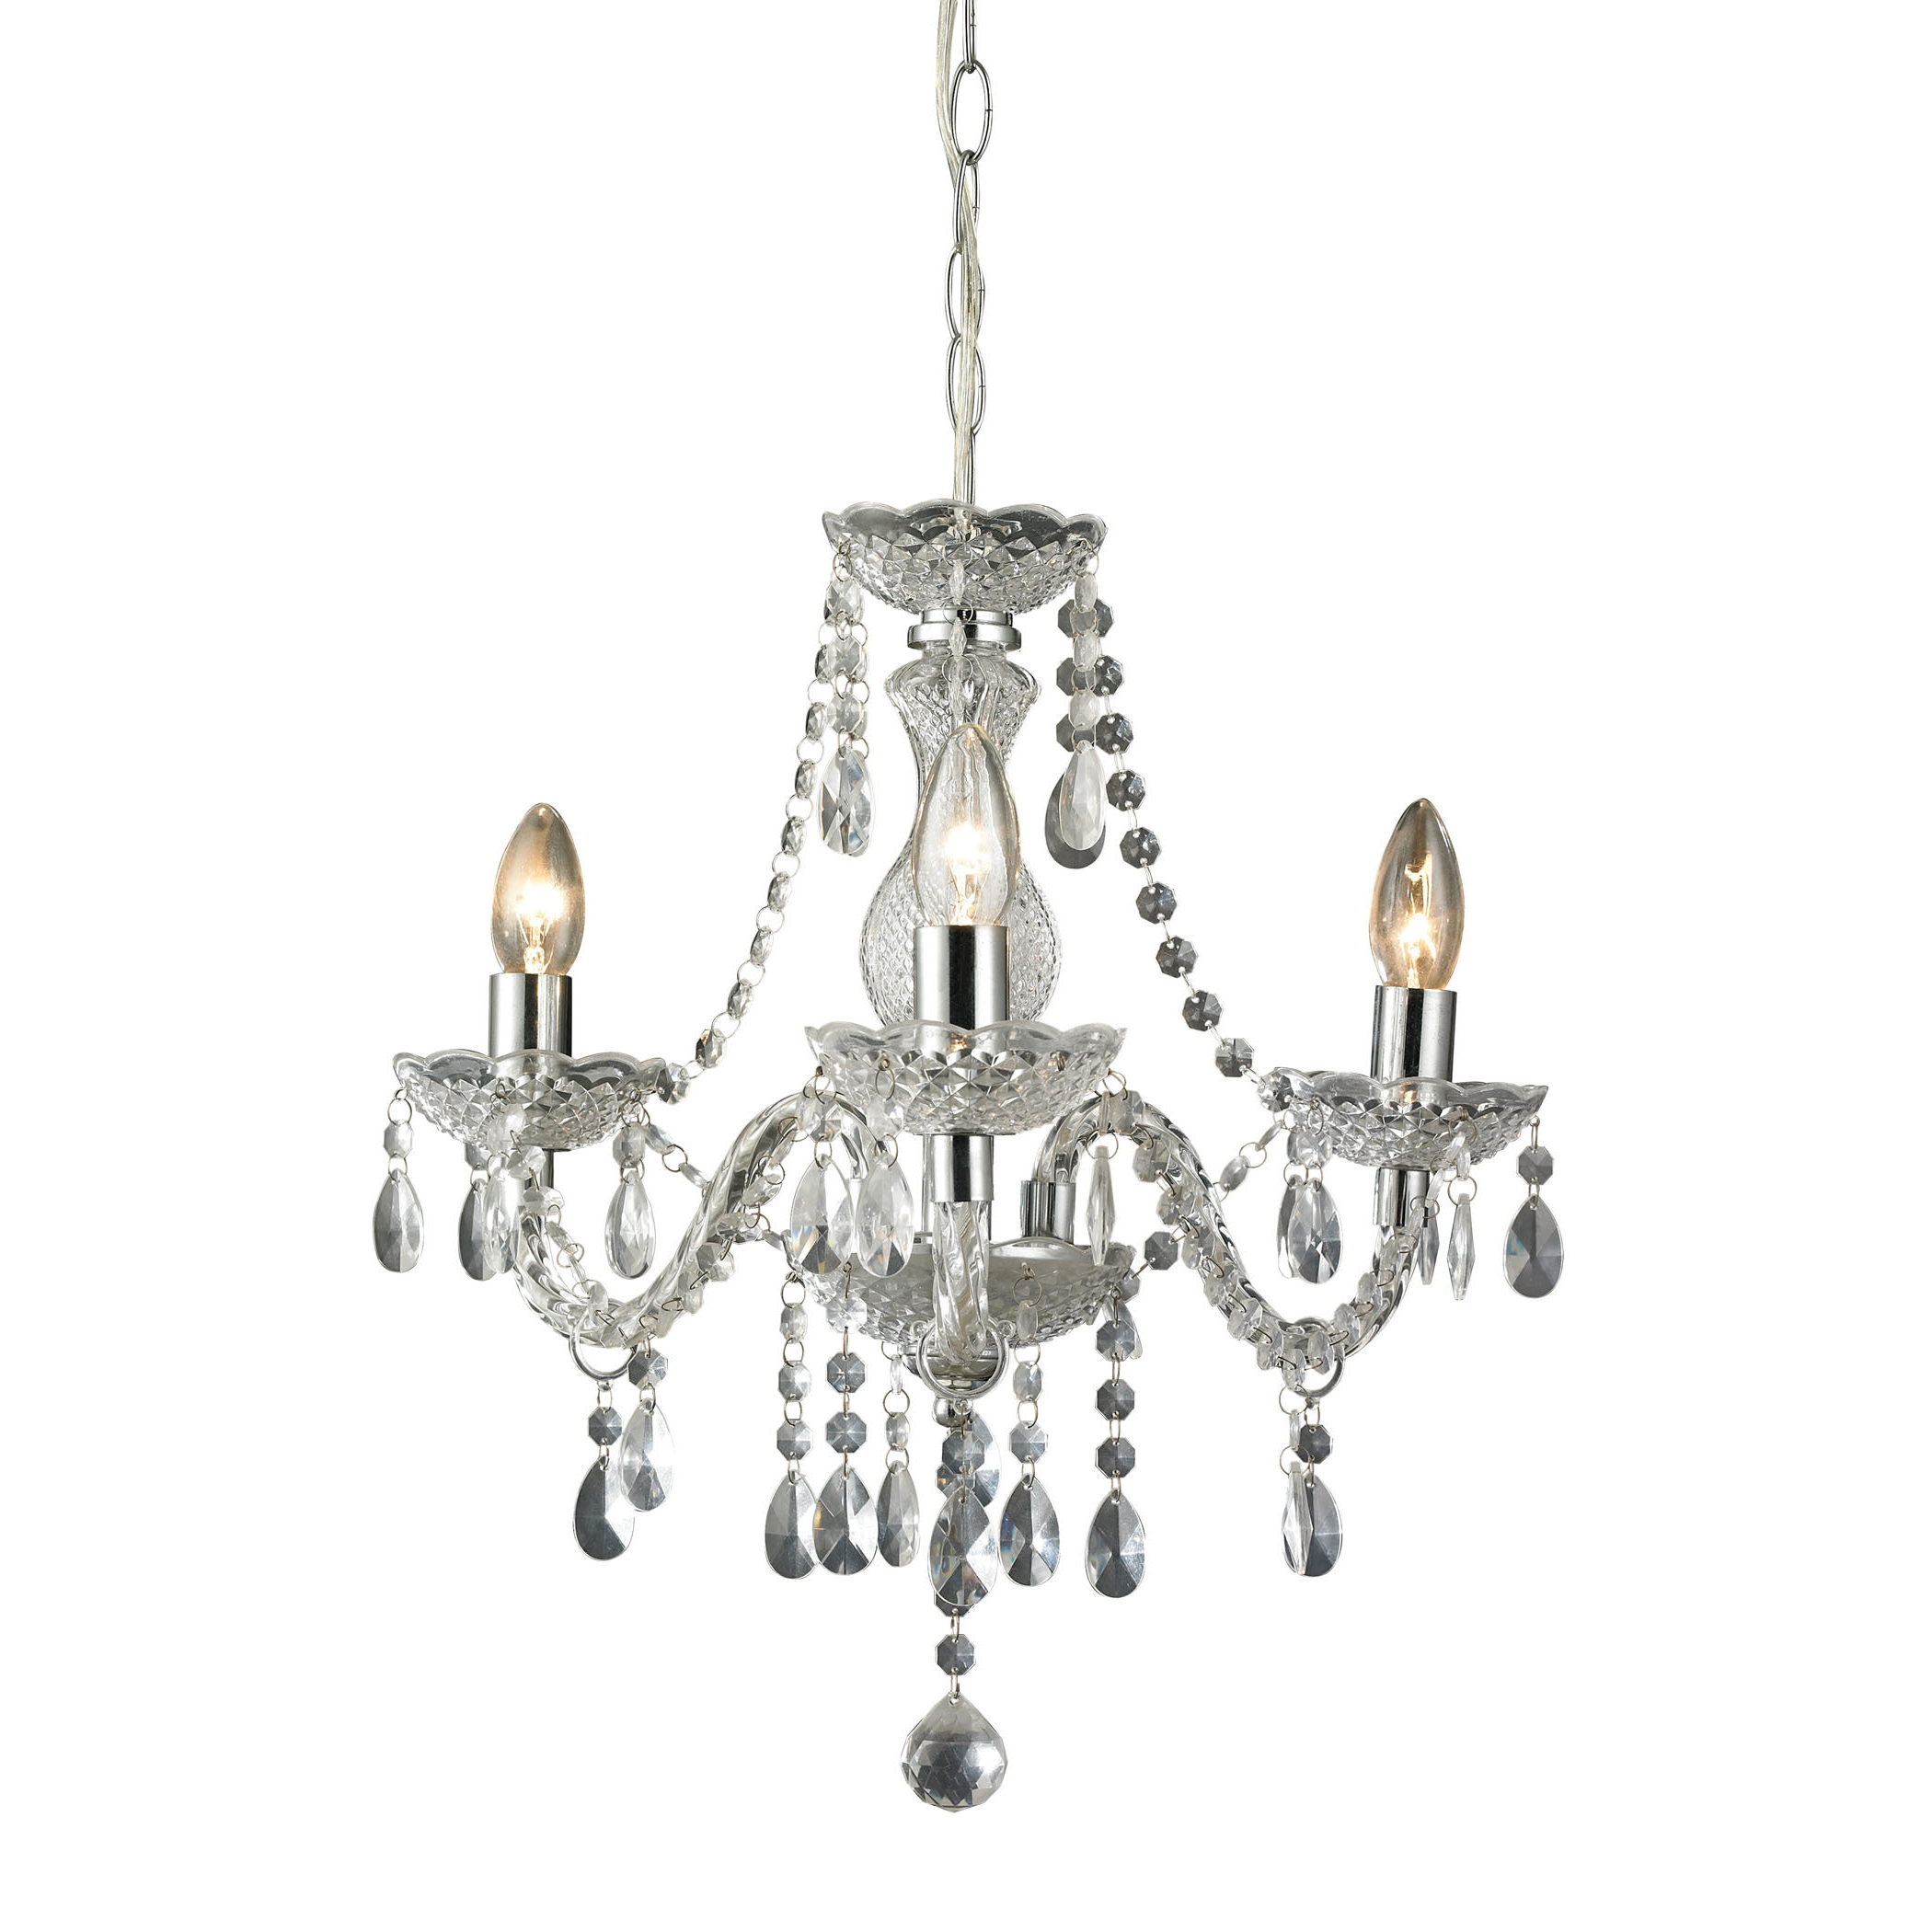 Gilson 3 Light Candle Style Chandelier With Regard To Preferred Aldora 4 Light Candle Style Chandeliers (View 17 of 25)